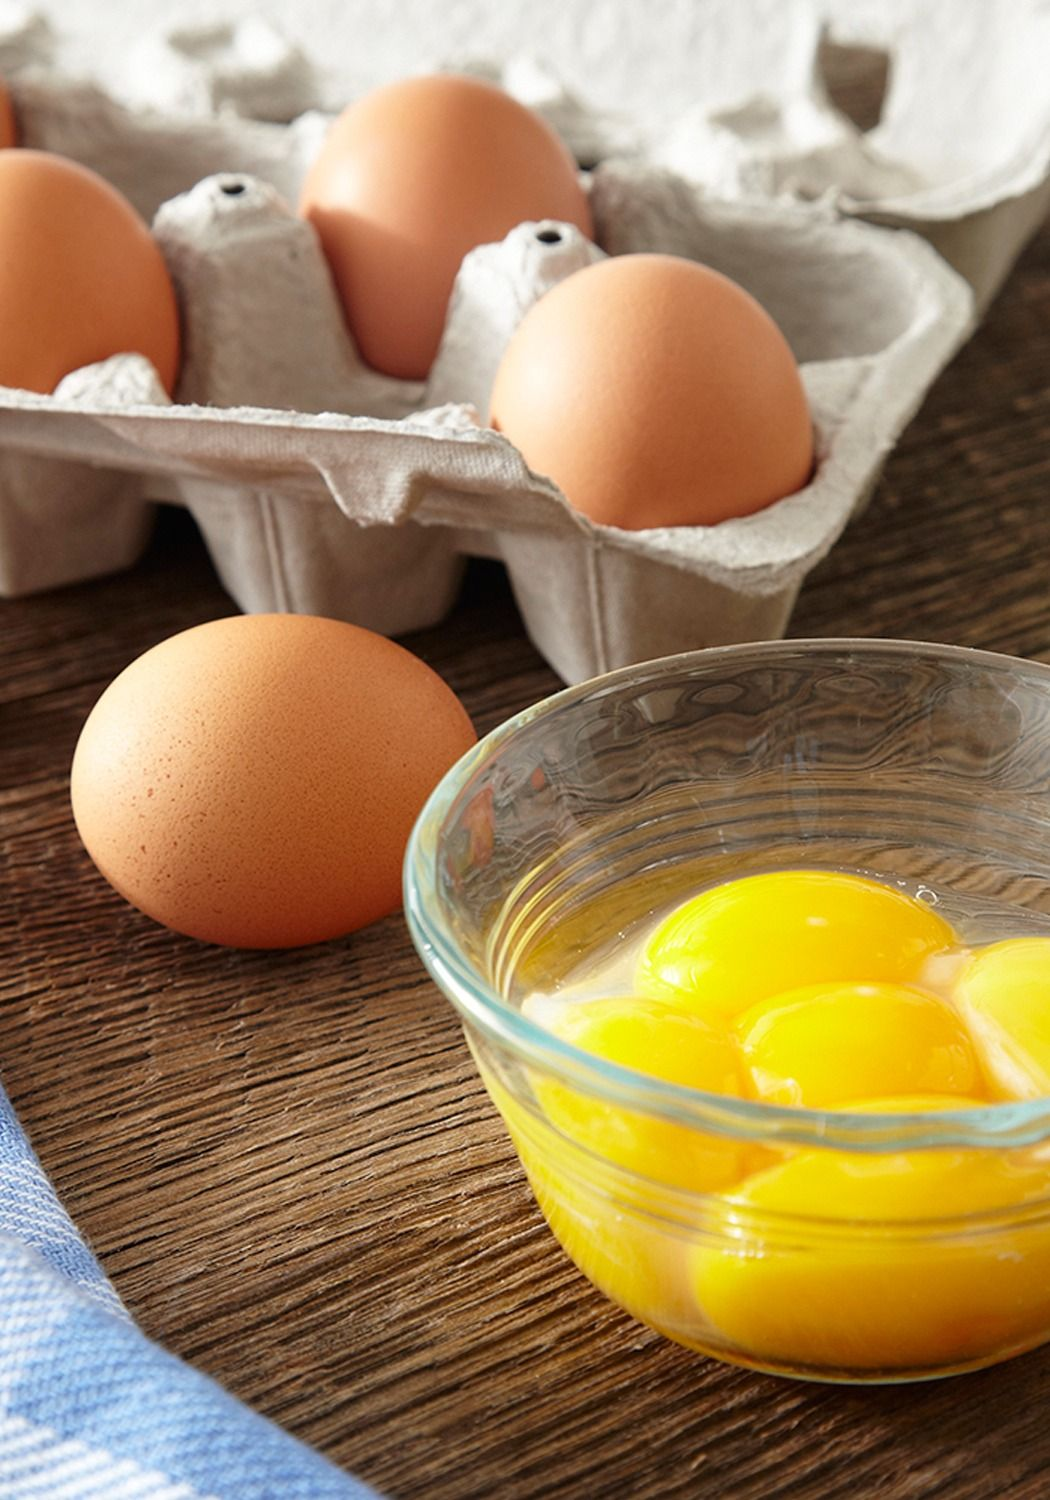 Try One Of These 3 Easy Ways To Make Separating Eggs Less